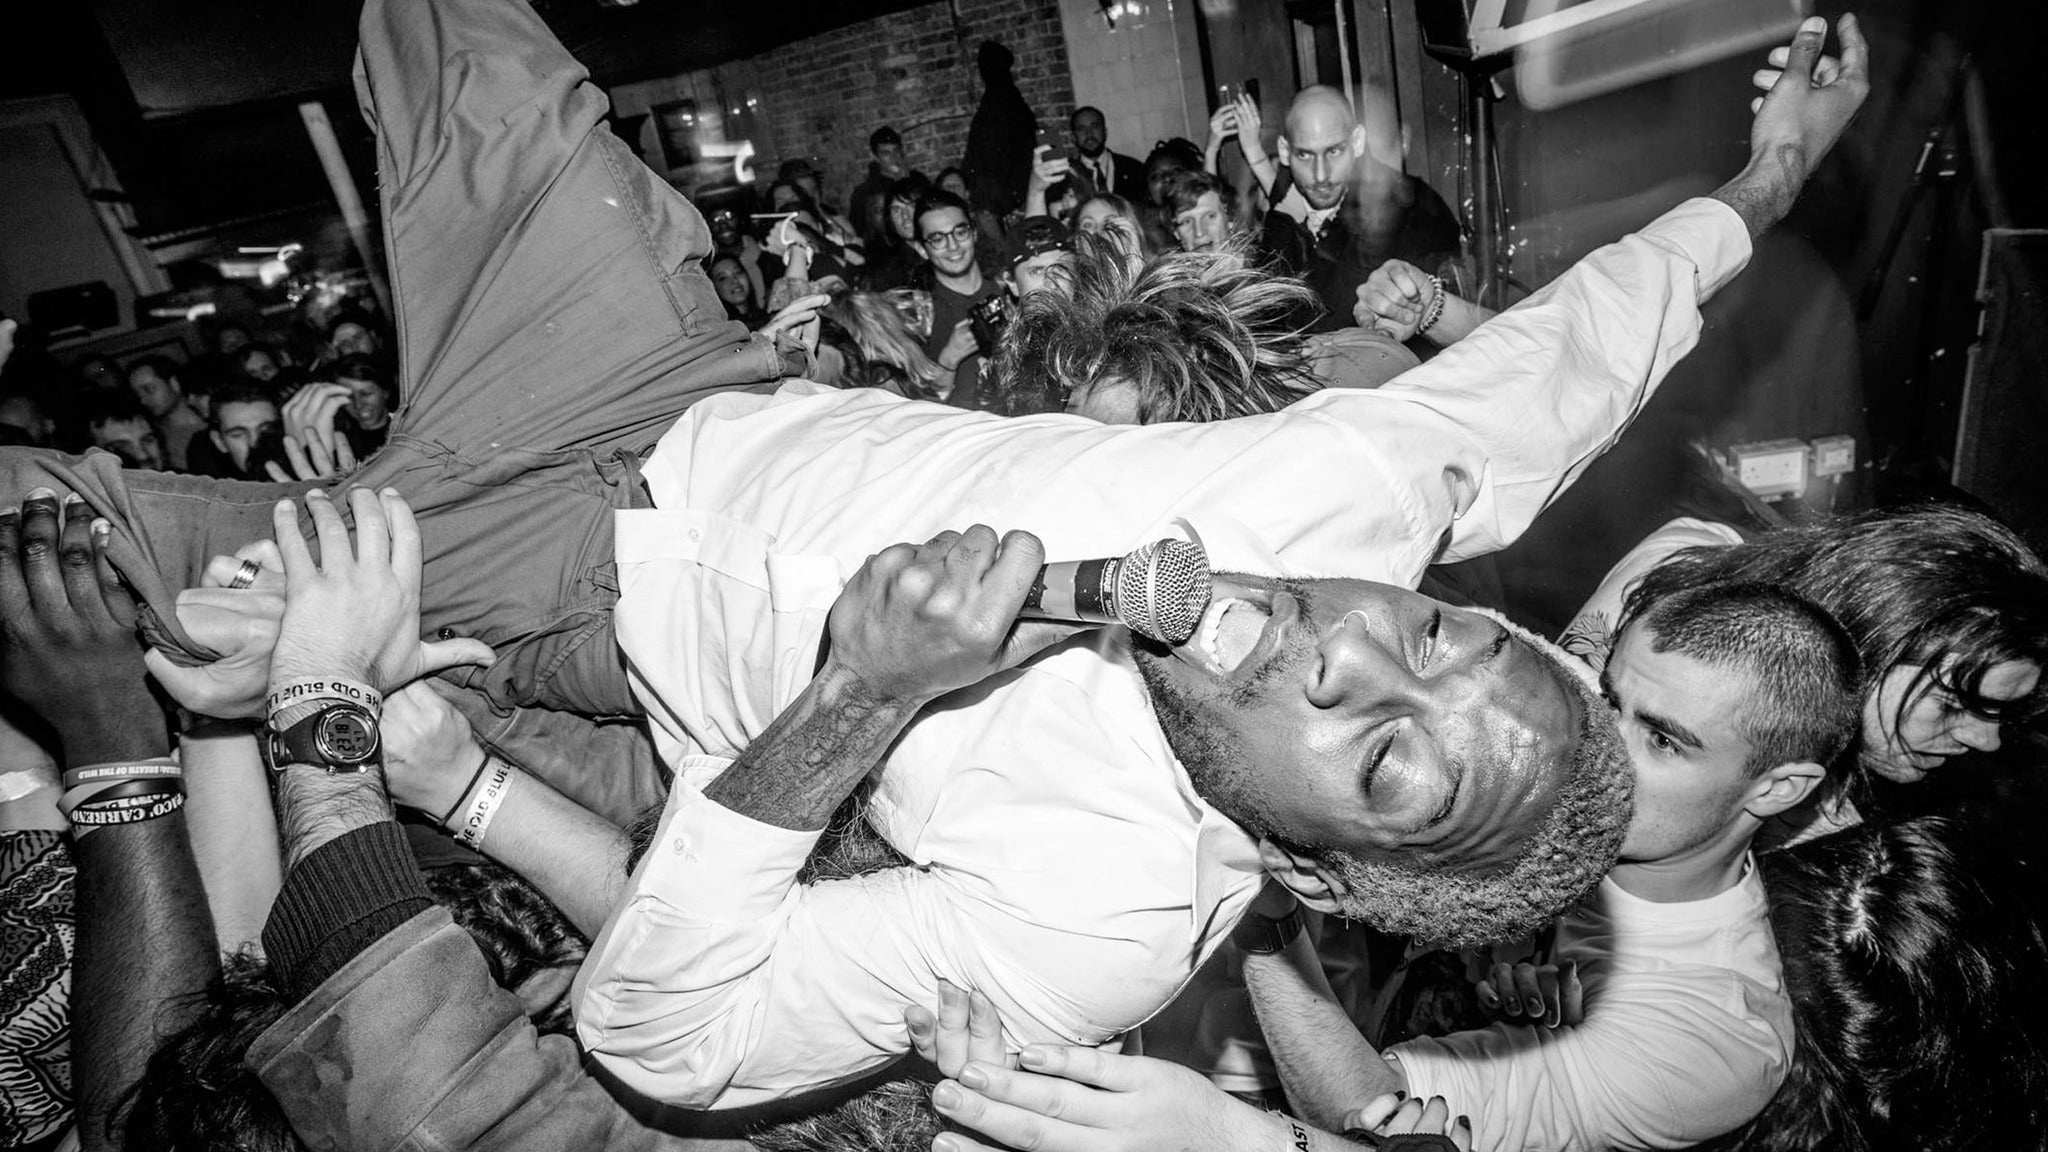 Ho99o9 at The Local 662